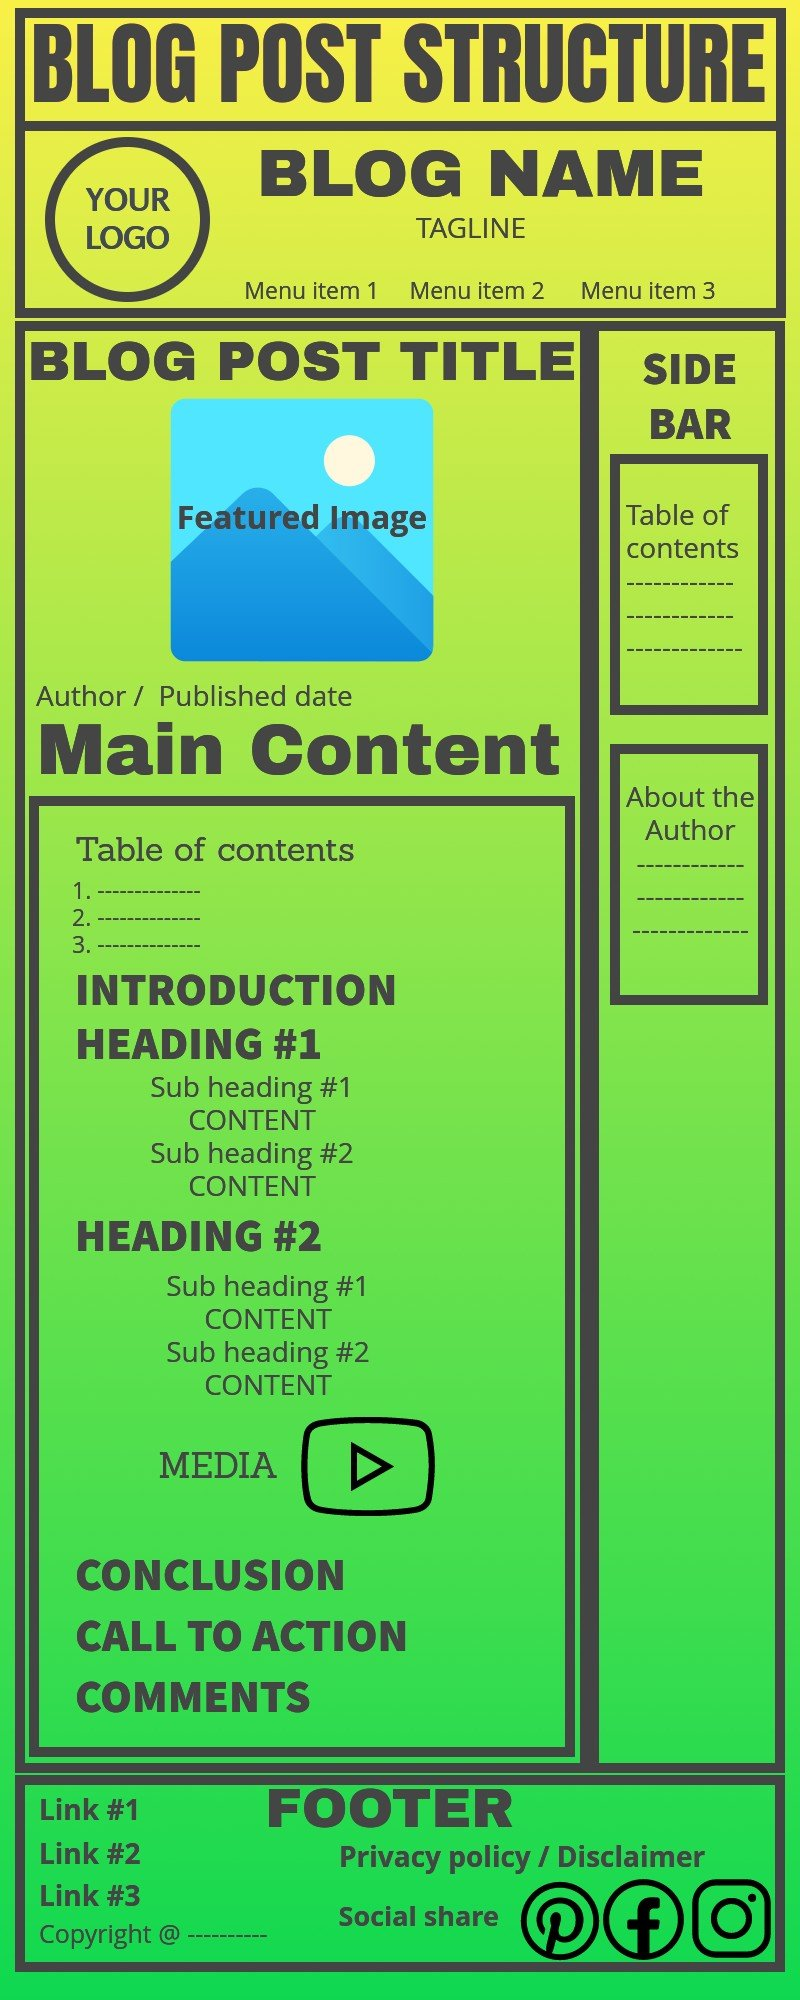 Infographic - The structure of a blog post